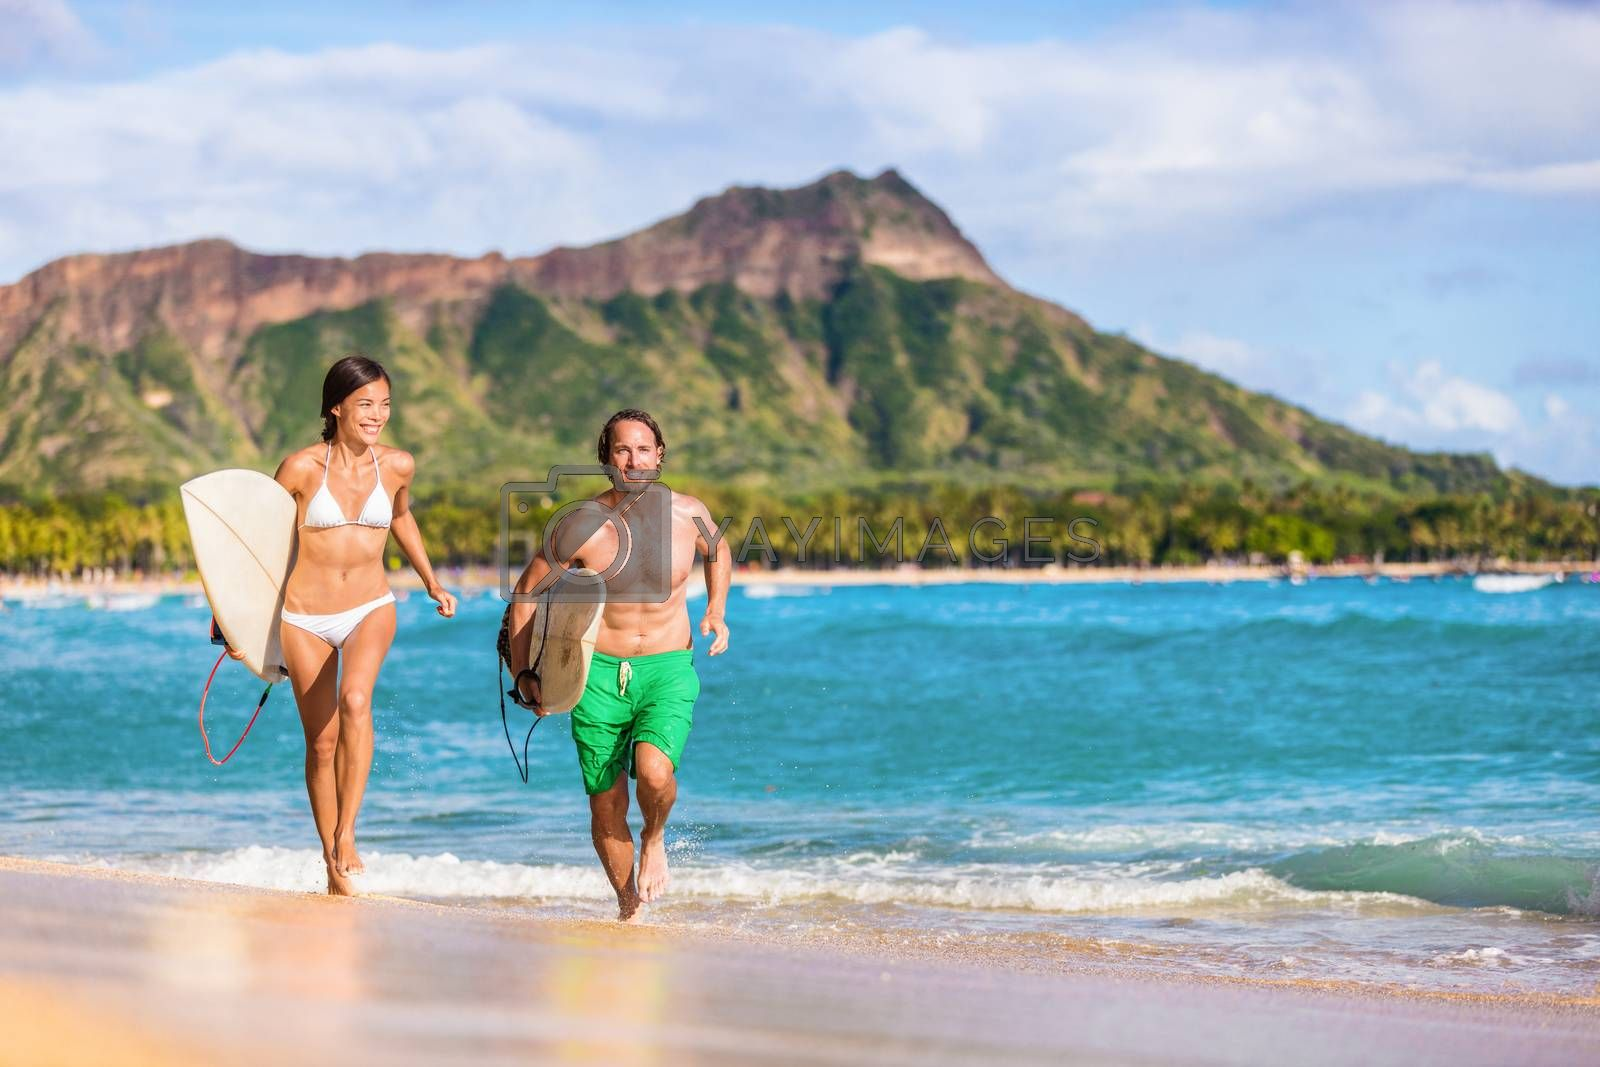 Happy surf people having fun surfing on Waikiki beach, Honolulu, Oahu, Hawaii. Asian woman, caucasian man multiracial couple running out of ocean splashing water. Summer vacations travel landscape by Maridav